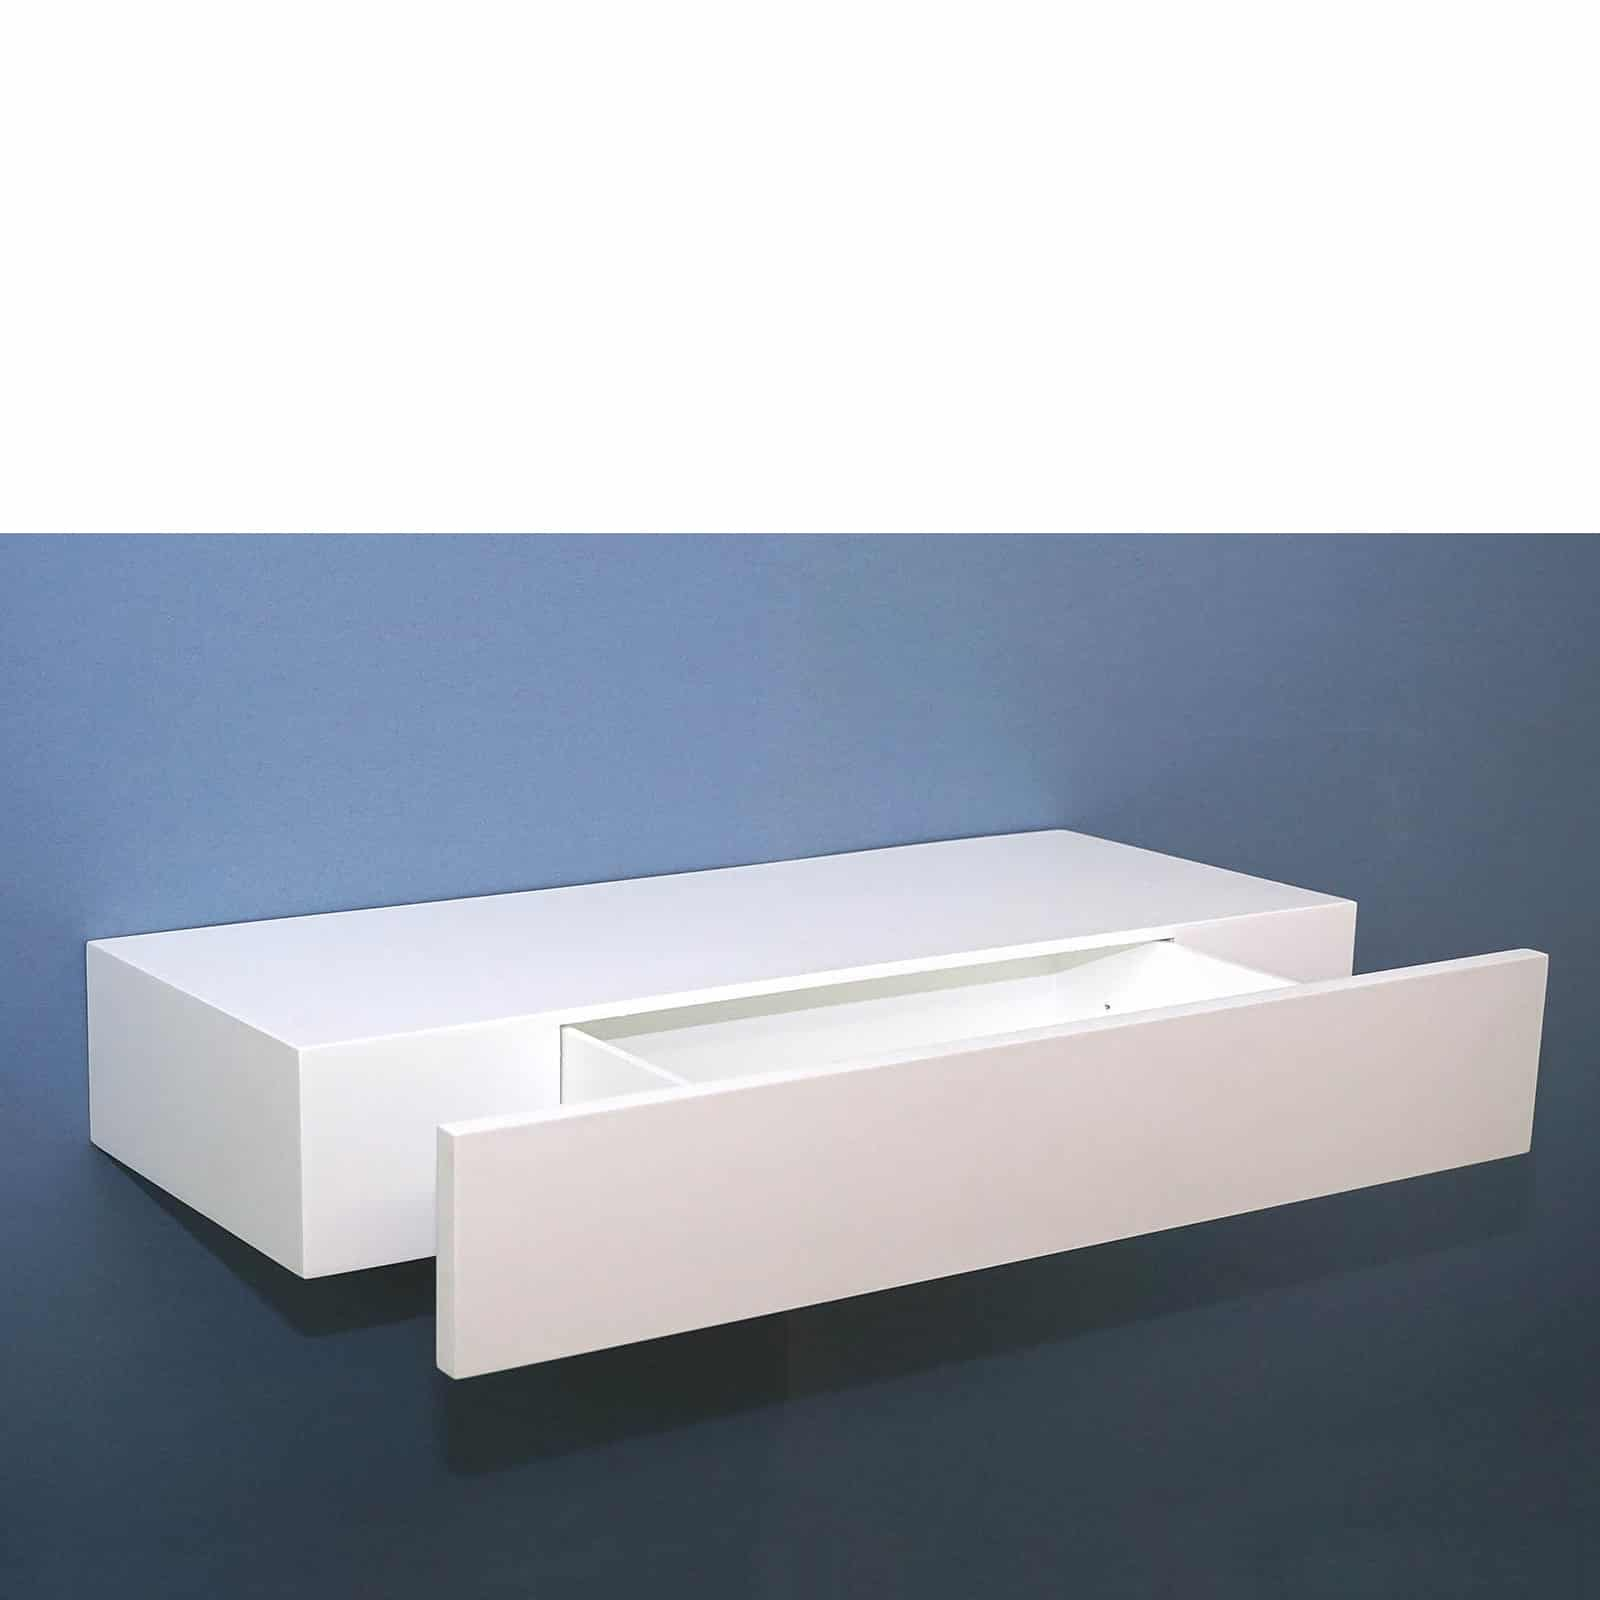 floating shelf with drawer white mastershelf open empty web lacquer high gloss pottery barn shelving unit glass corner shelves bedroom inch depth bookshelf over the toilet towel